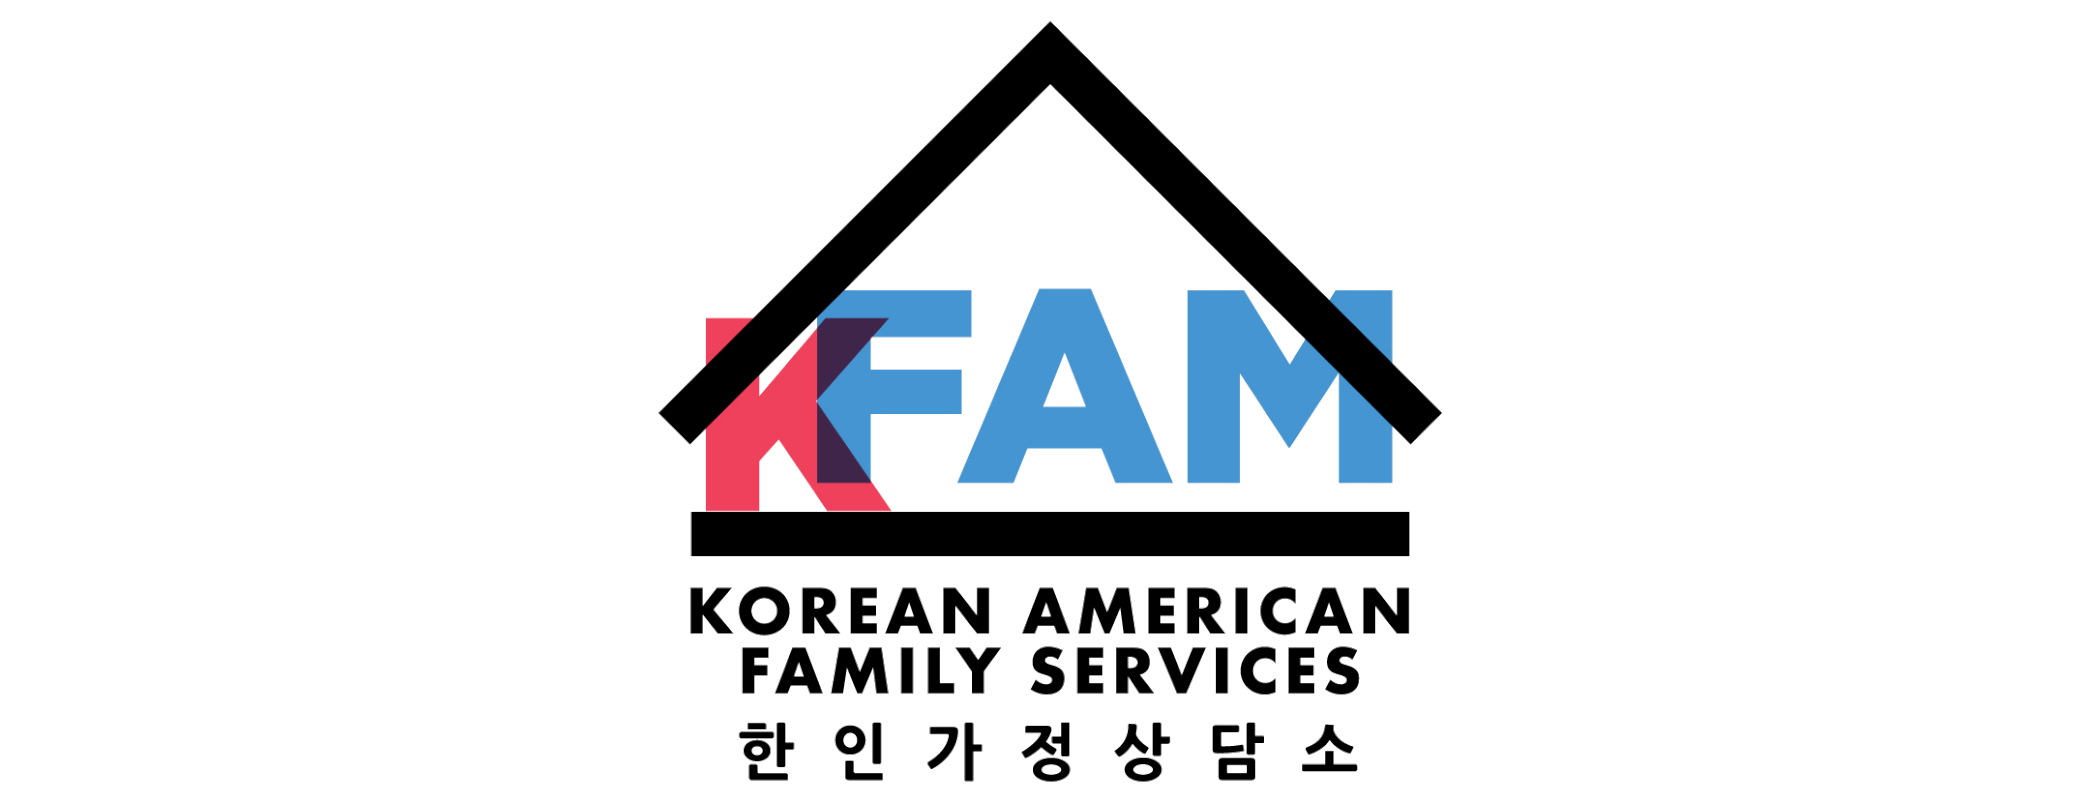 - Korean AmericanFamily Services3727 W. 6th St., Ste 320,Los Angeles 90020kfamla.org